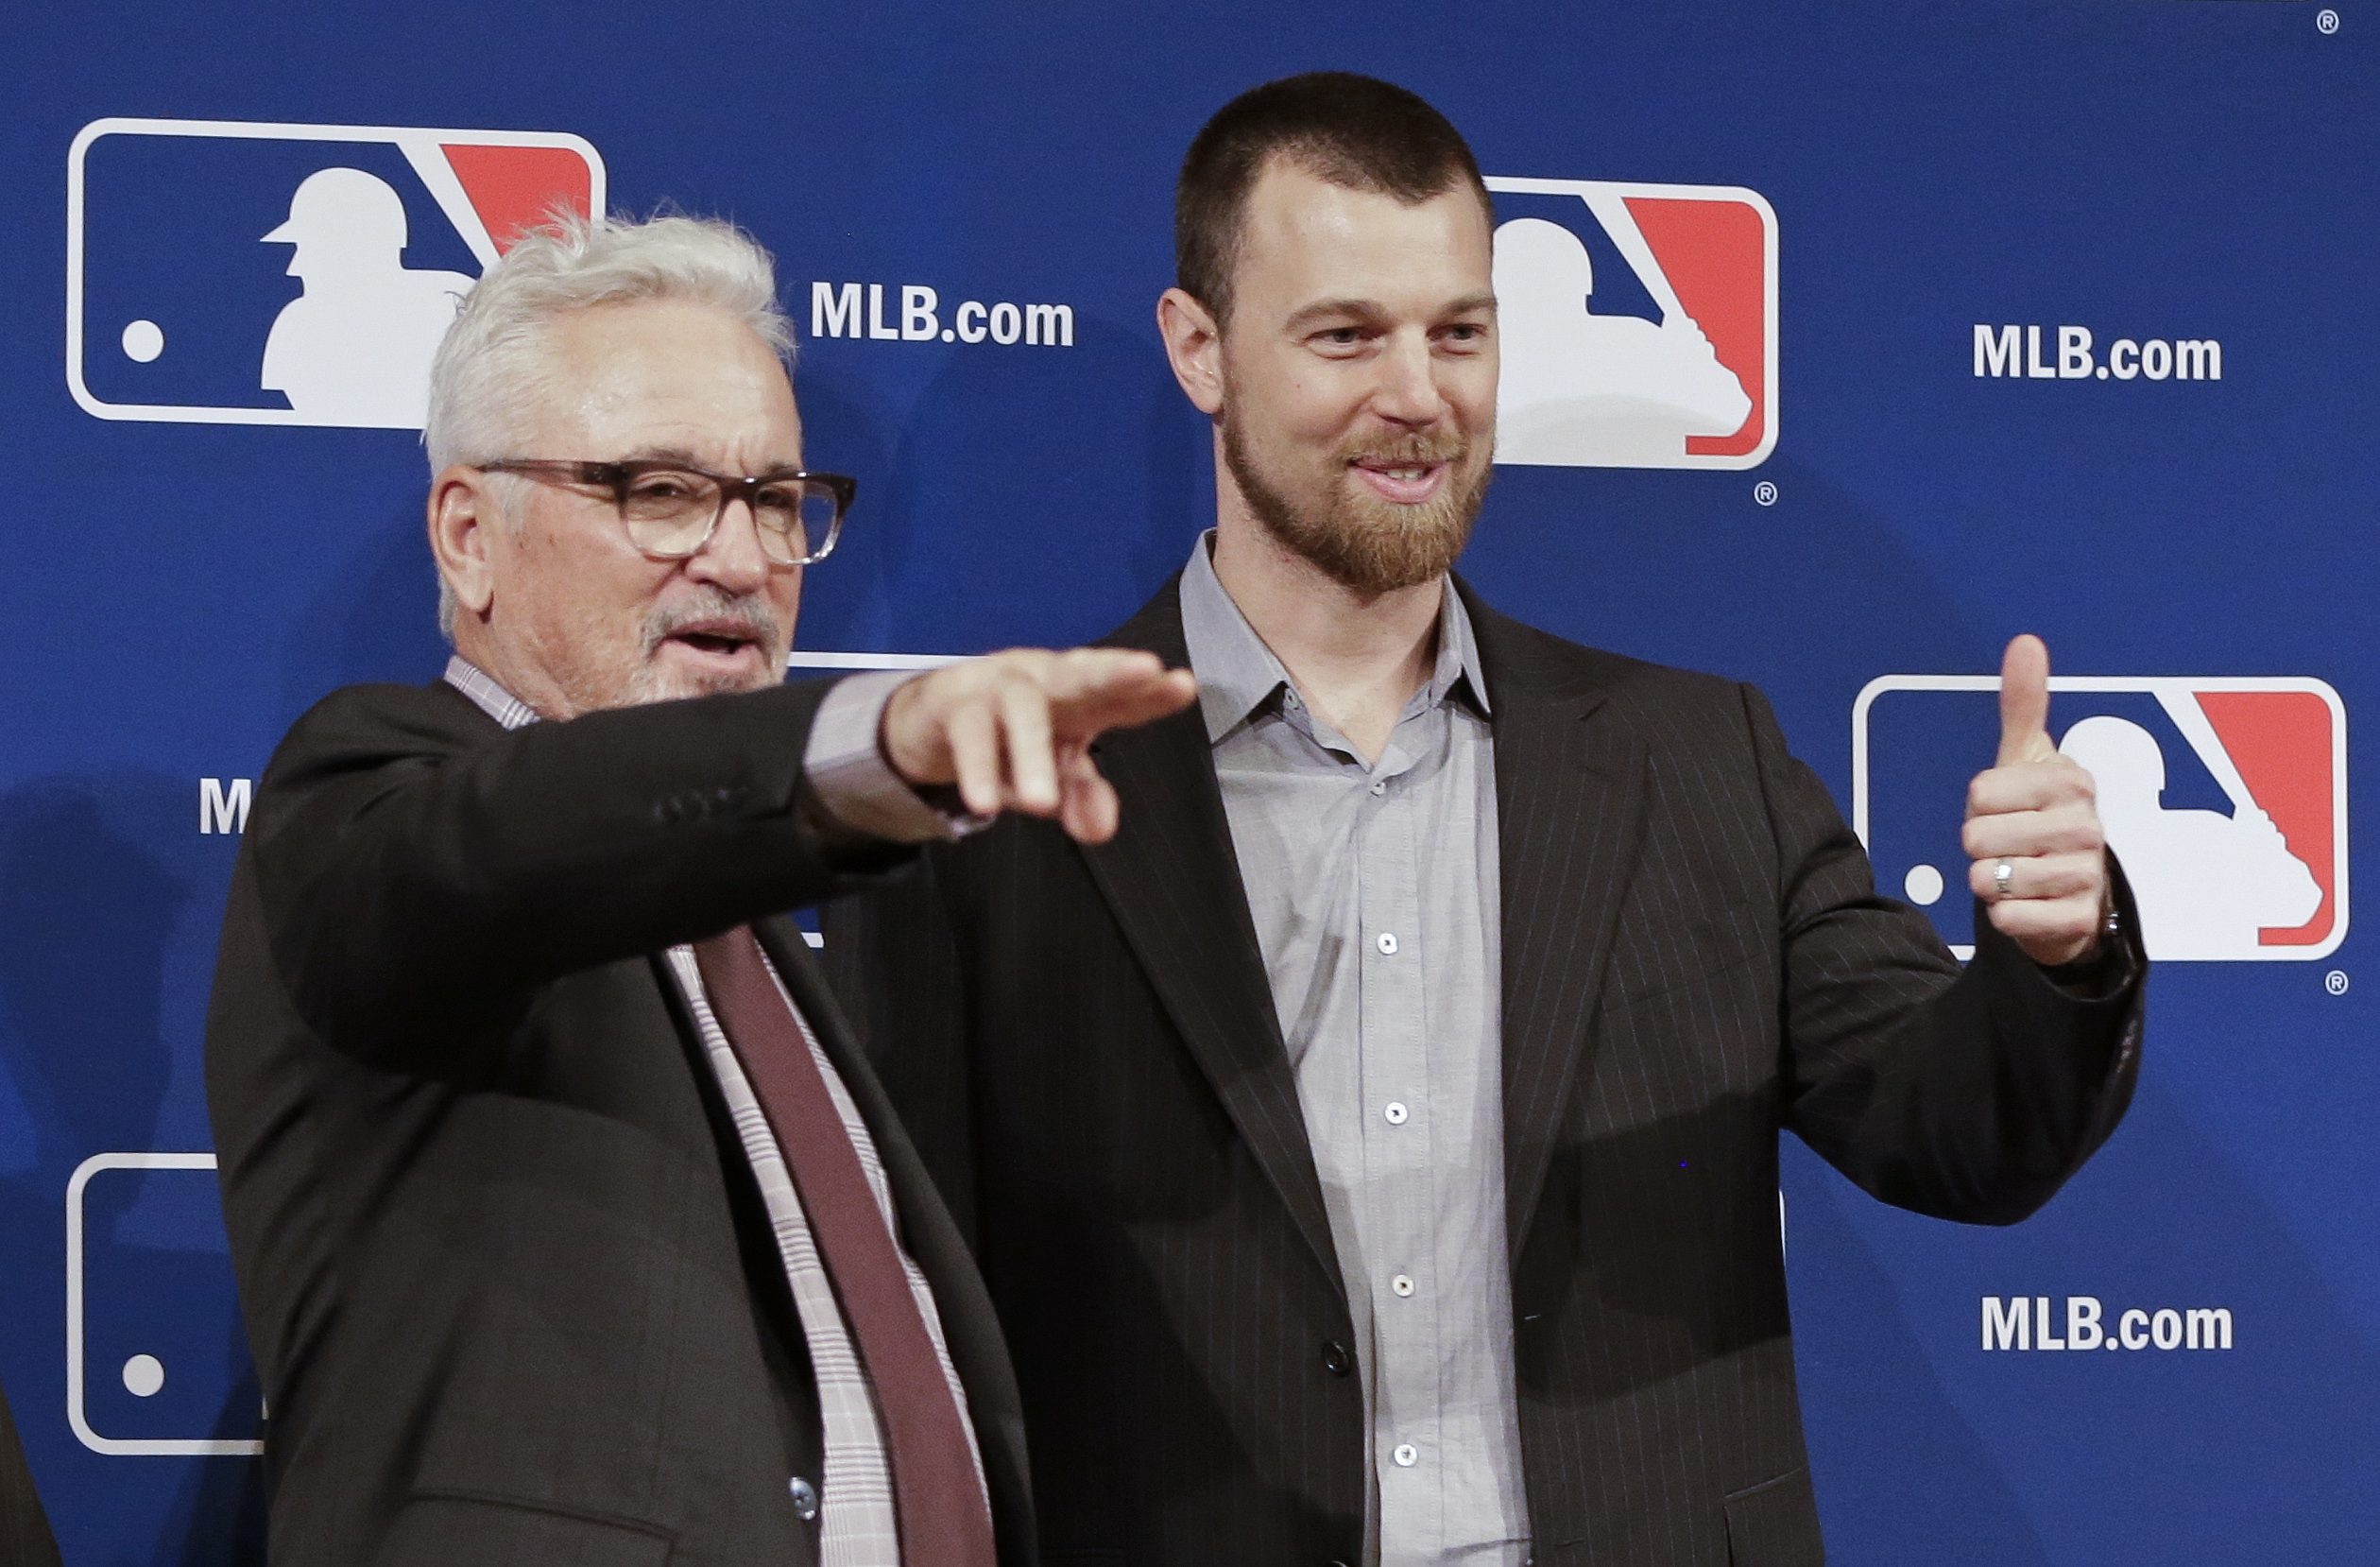 FILE - In this Dec. 9, 2015, file photo, Chicago Cubs manager Joe Maddon, left, joins switch-hitting free agent Ben Zobrist for the announcement that Zobrist had signed with the Cubs, at bseball's winter meetings in Nashville, Tenn. Zobrist, 34, brings ma